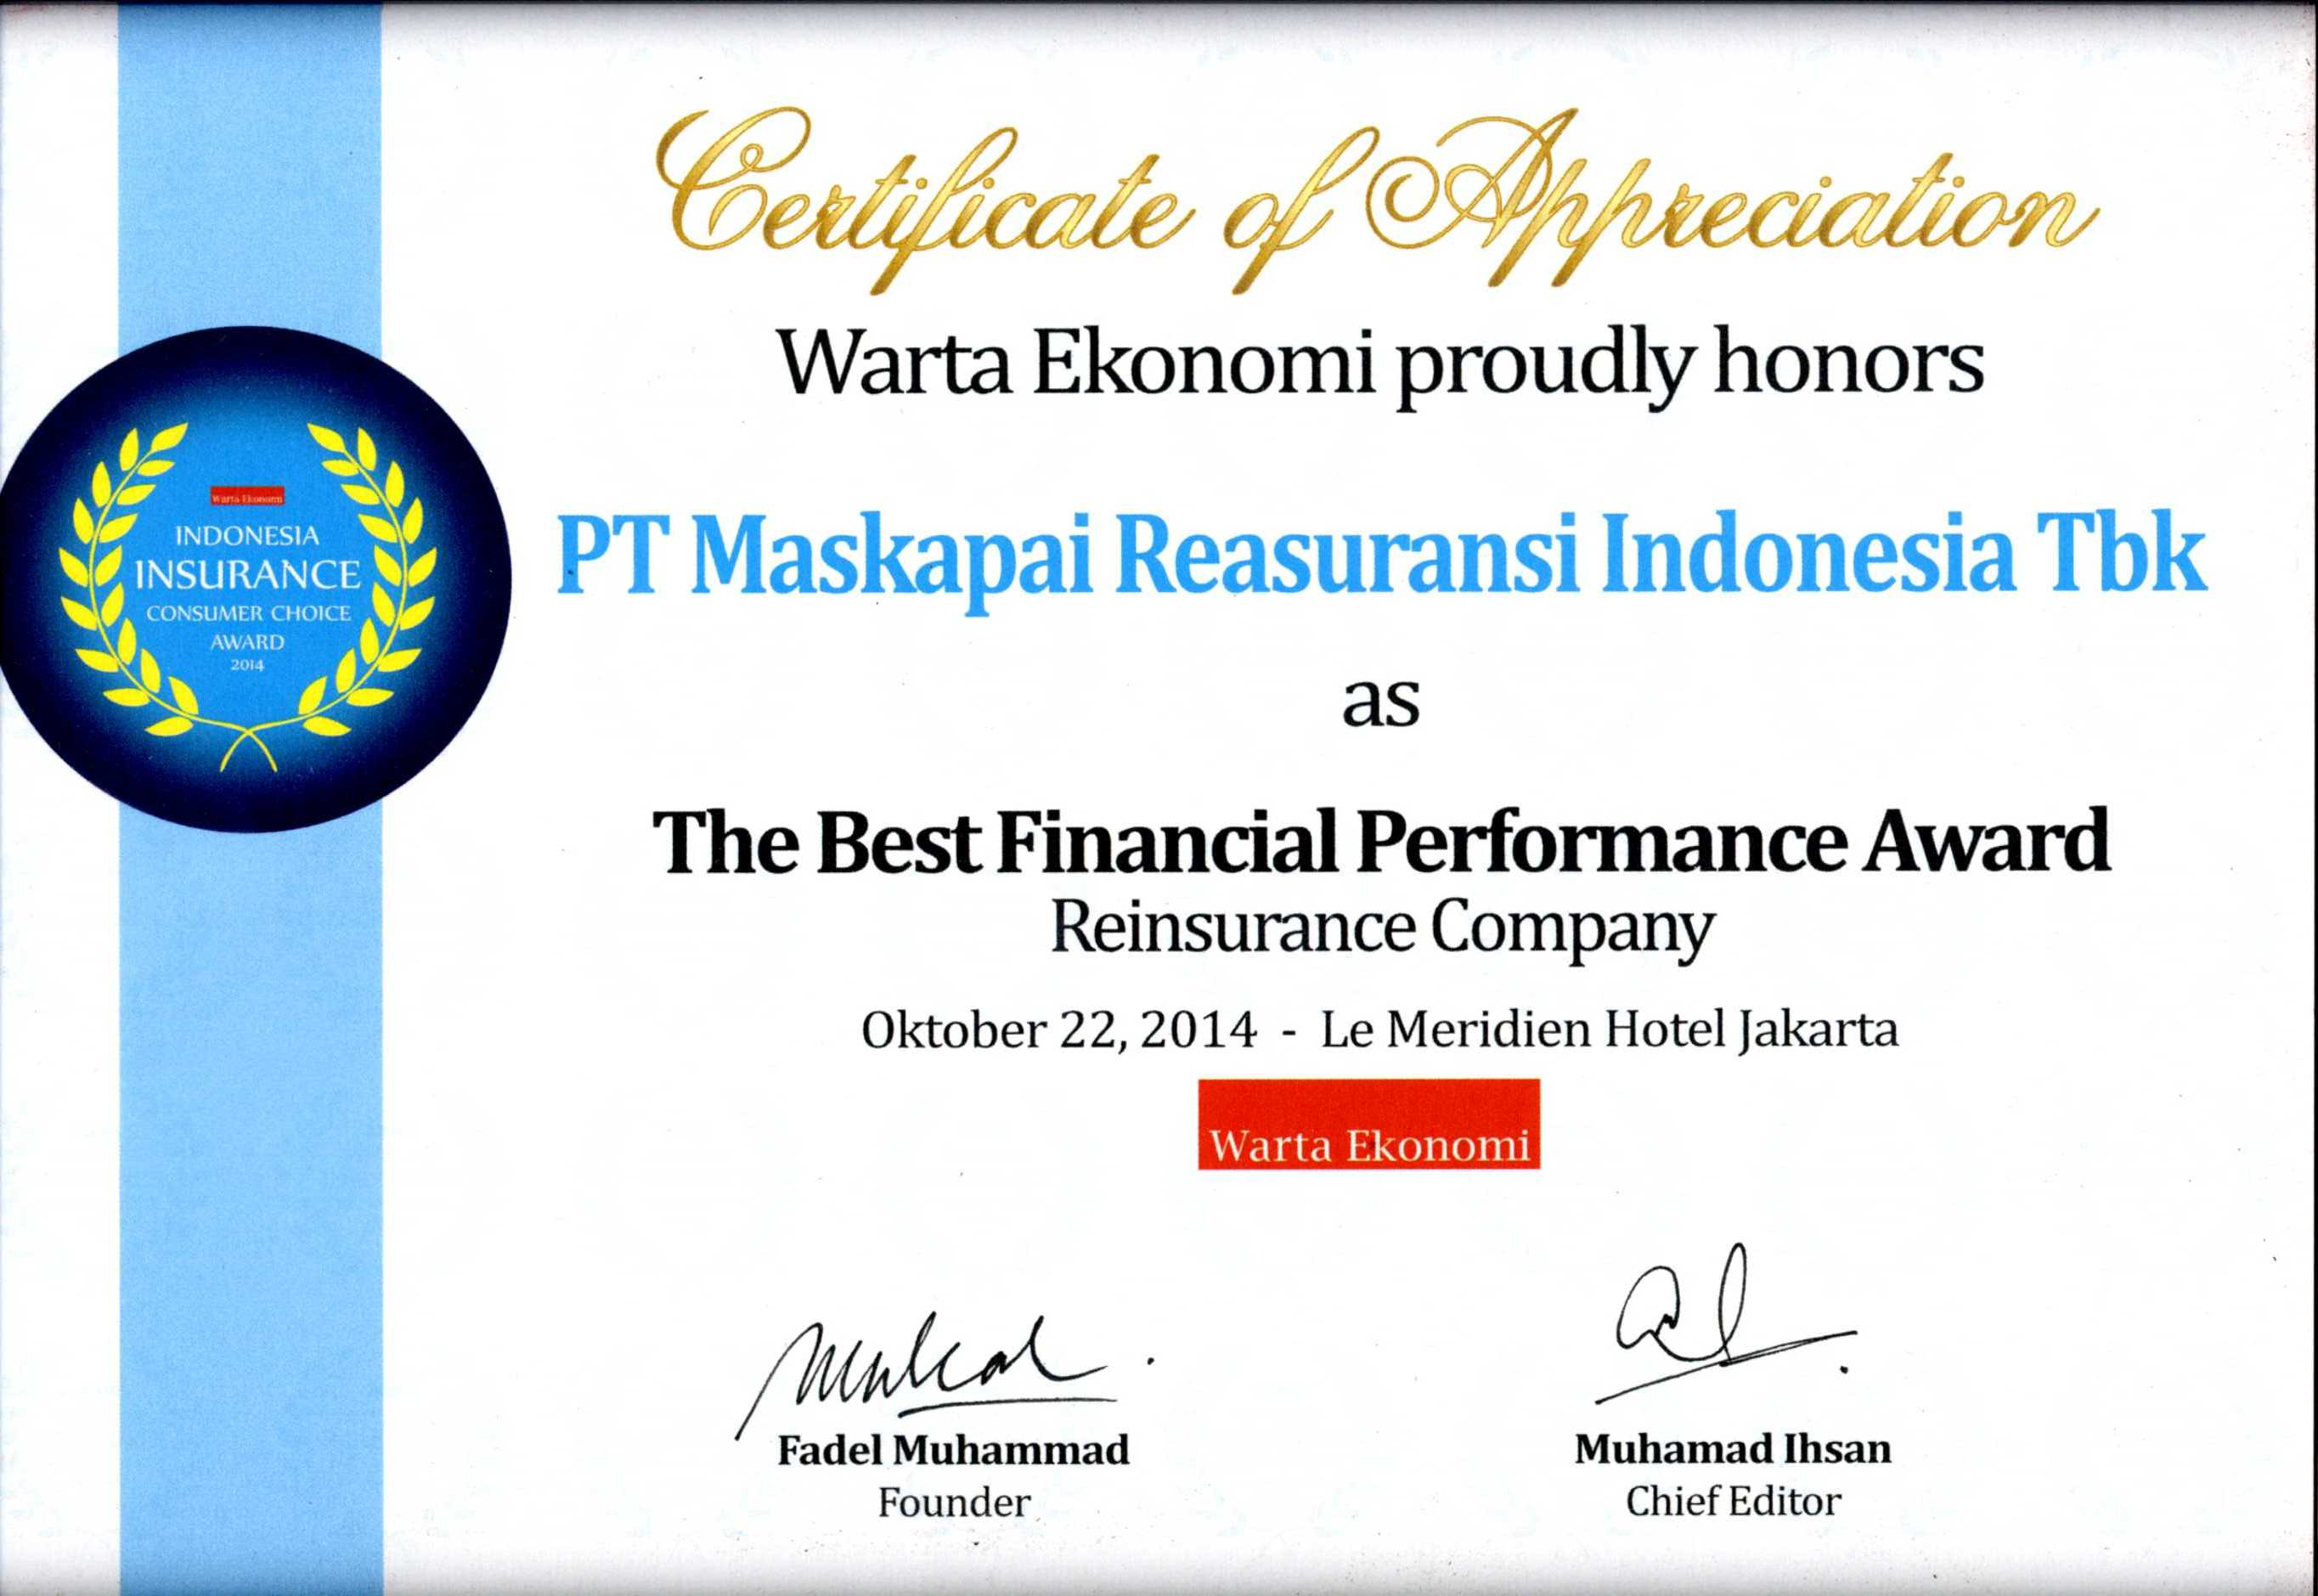 Majalah Warta Ekonomi : The Best Reinsurance Company 2014 Financial Performance Award